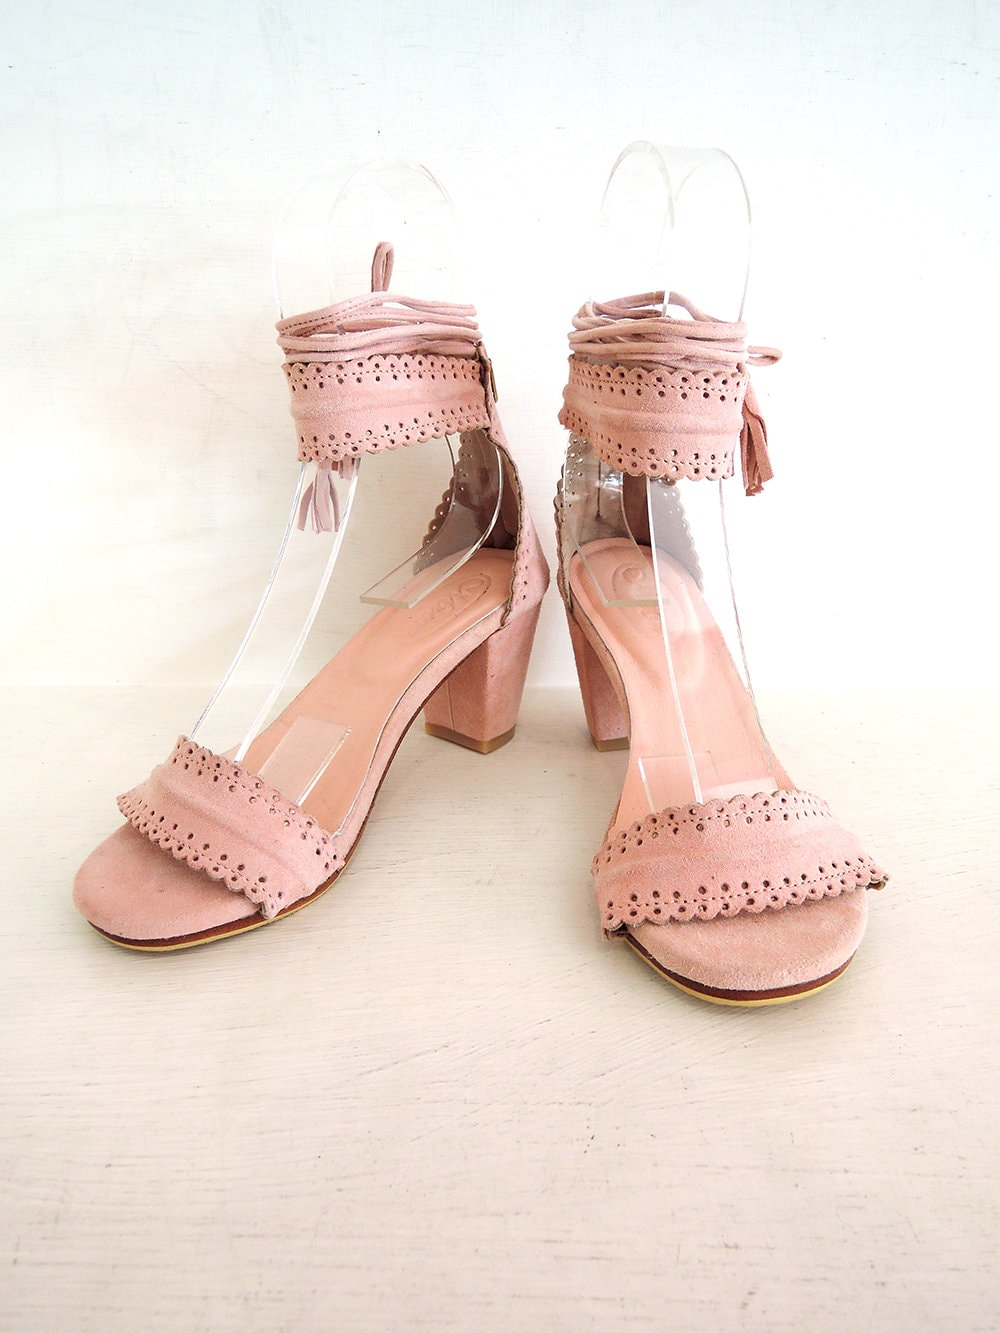 BLOCK HEEL SHOES for Women w Leather Tassels. Laura HandMade Scallop Suede Shoes Leather Heels, Small Size Available in 18 Colours.